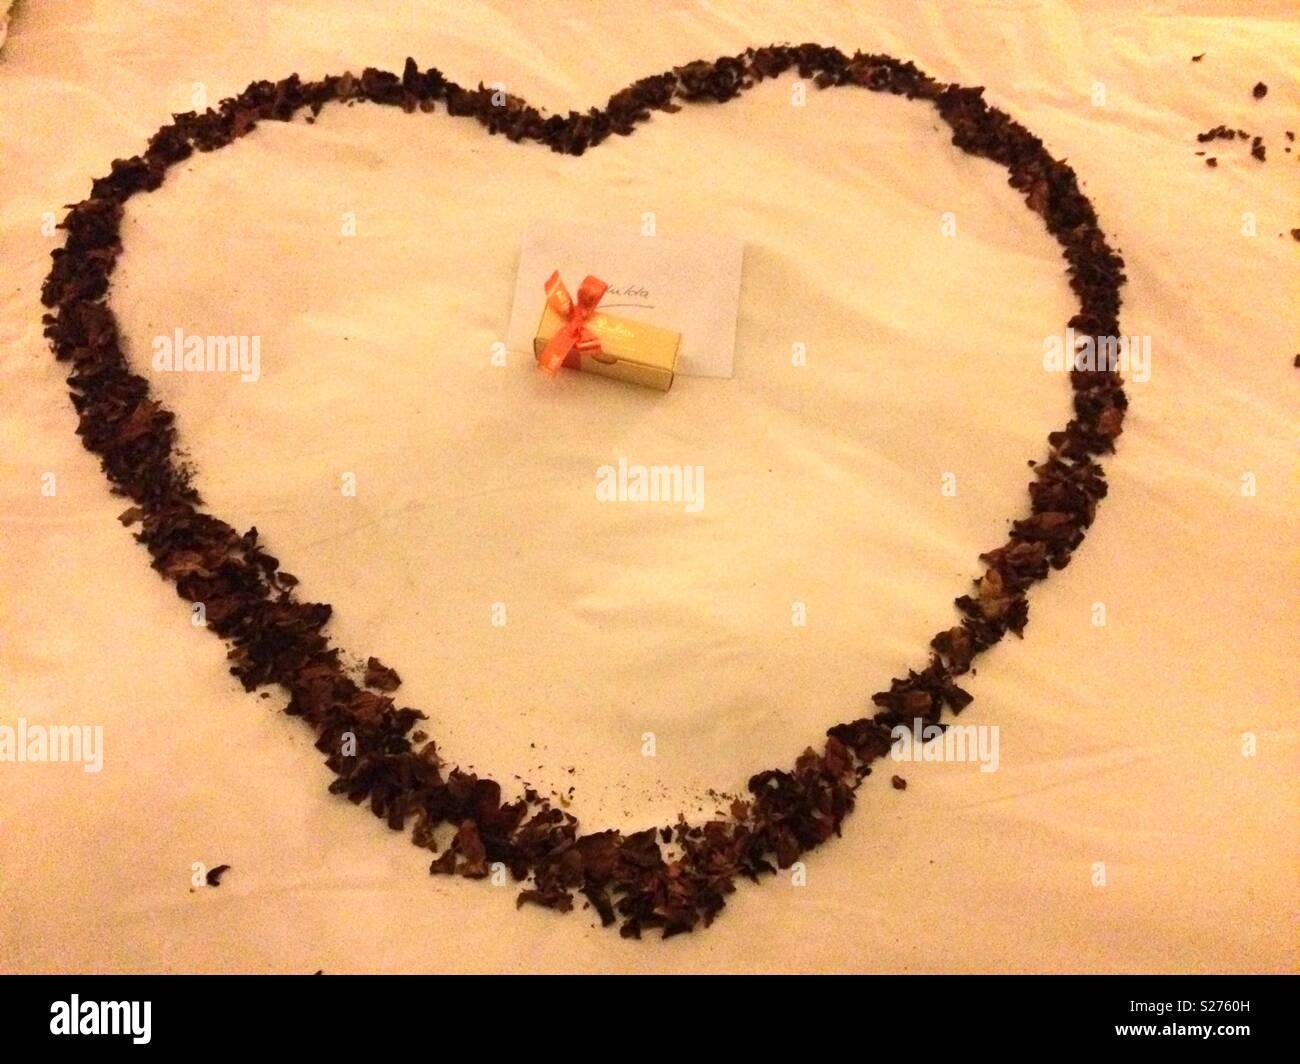 Bedside Heart Decoration And Small Box Of Chocolates Plus Birthday